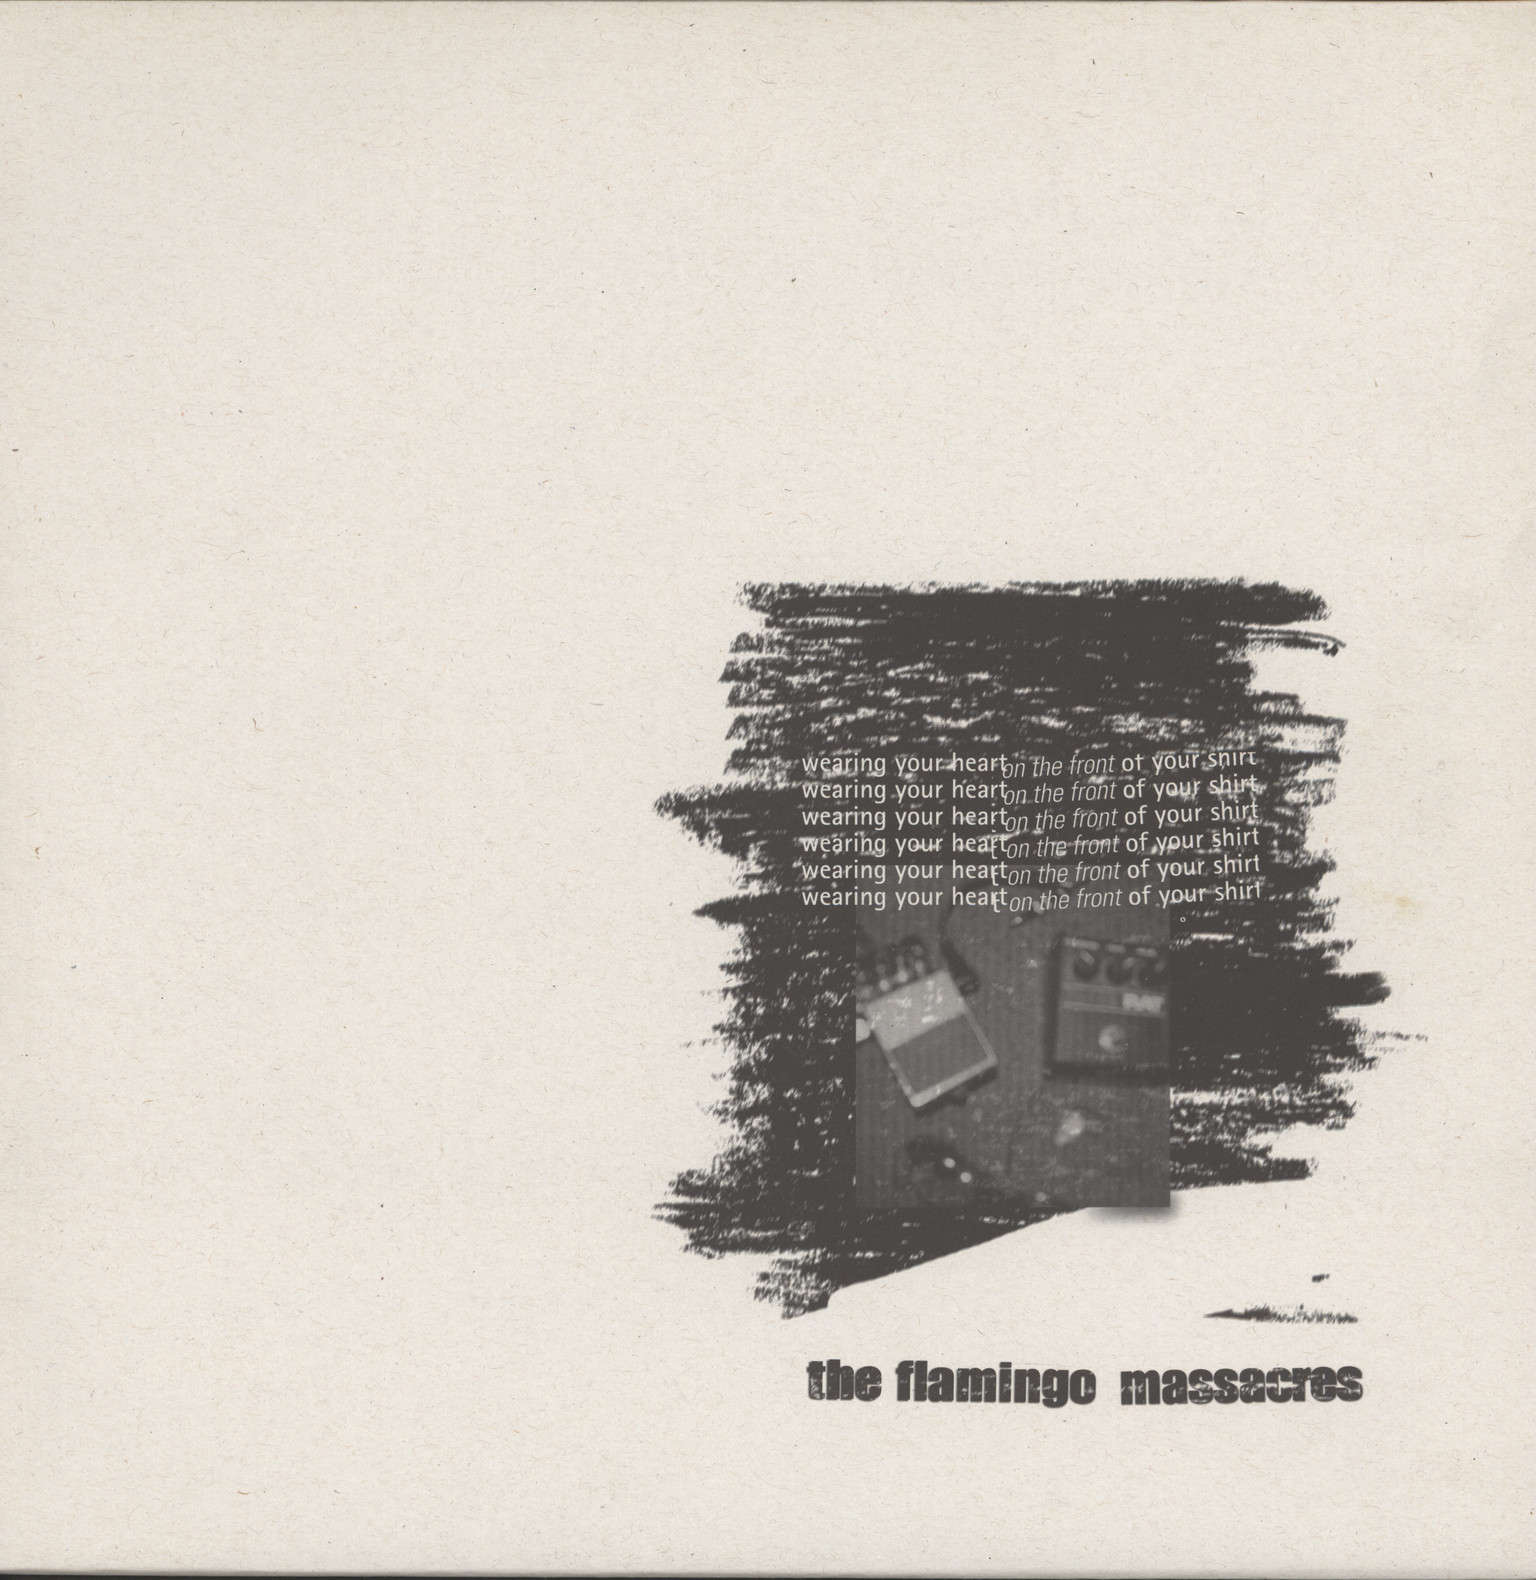 Flamingo Massacres: Wearing Your Heart On The Front Of Your Shirt, LP (Vinyl)